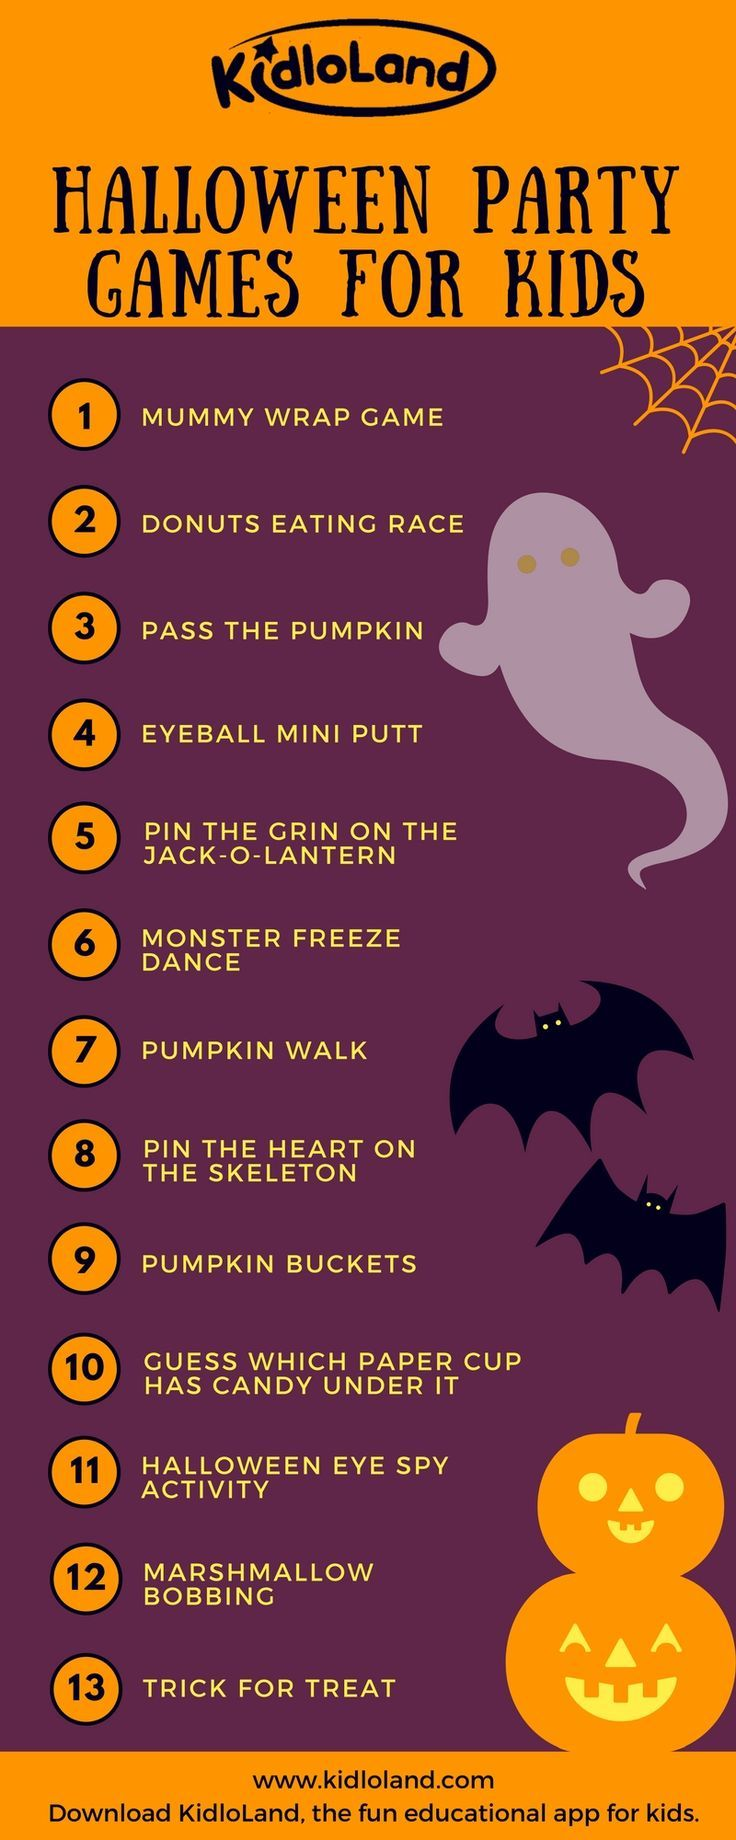 13 Fun Halloween Party Games For Kids - KidloLand